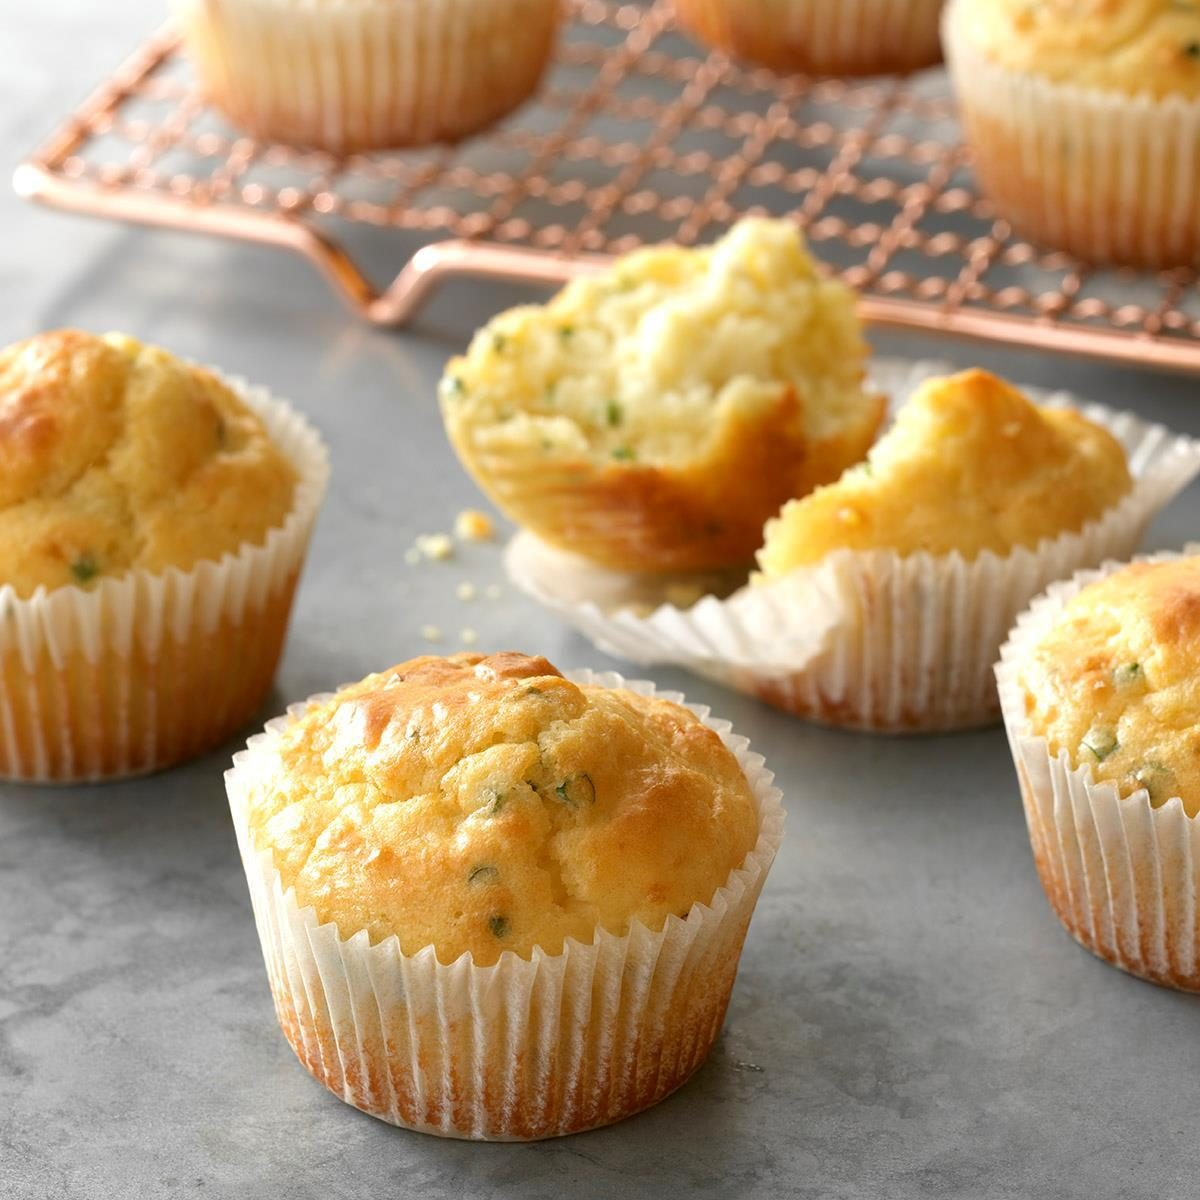 Feta N Chive Muffins Exps Chmz19 31173 C10 26 2b 2